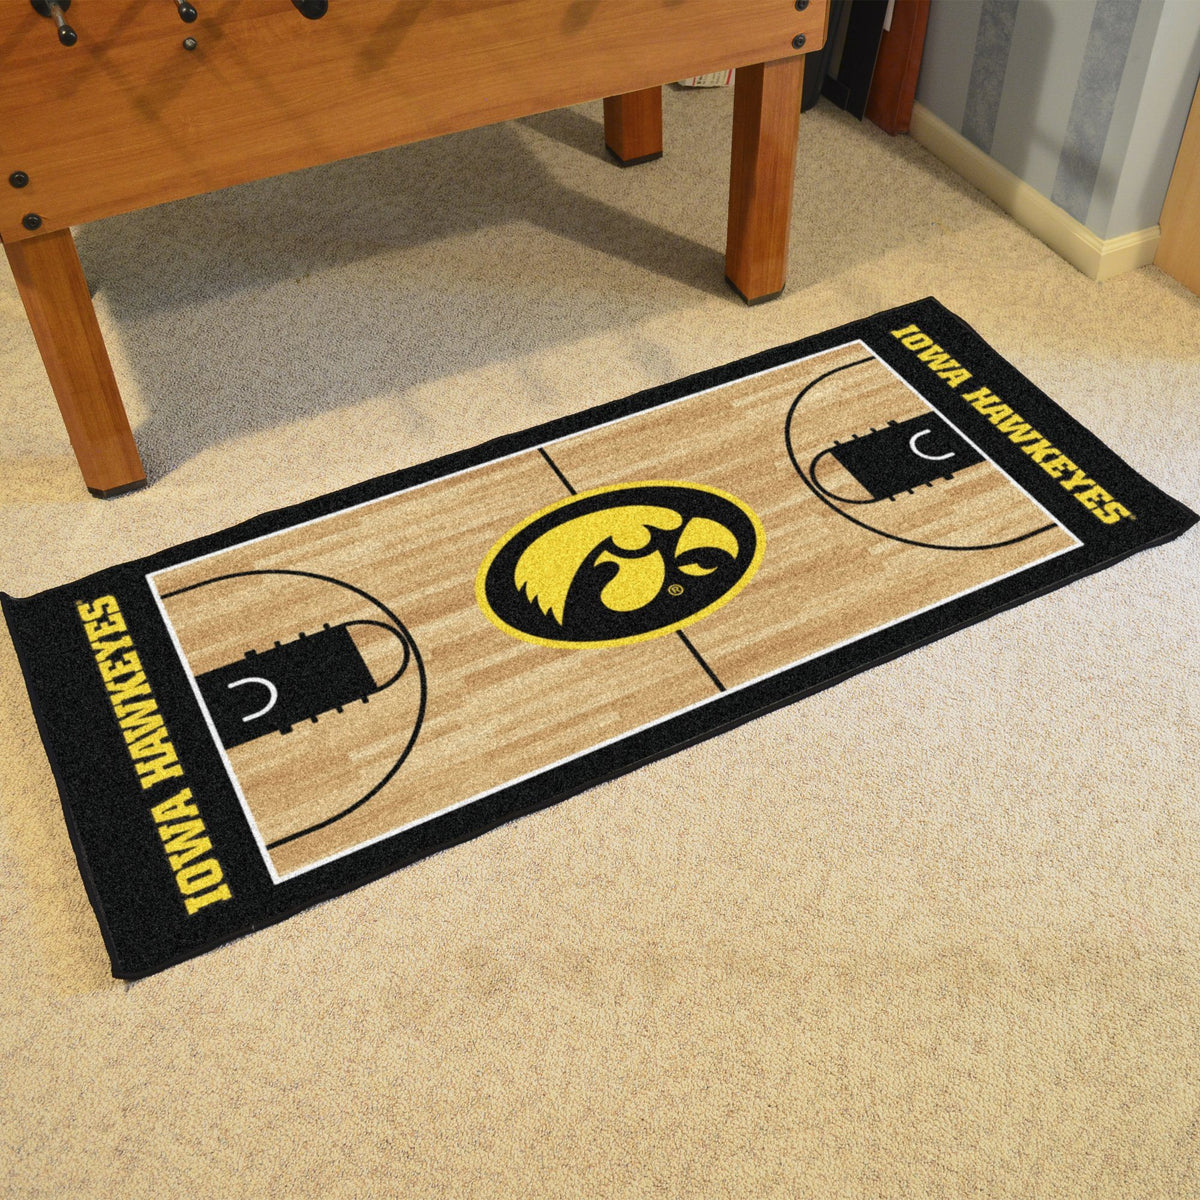 Collegiate - NCAA Basketball Runner Collegiate Mats, Rectangular Mats, NCAA Basketball Runner, Collegiate, Home Fan Mats Iowa